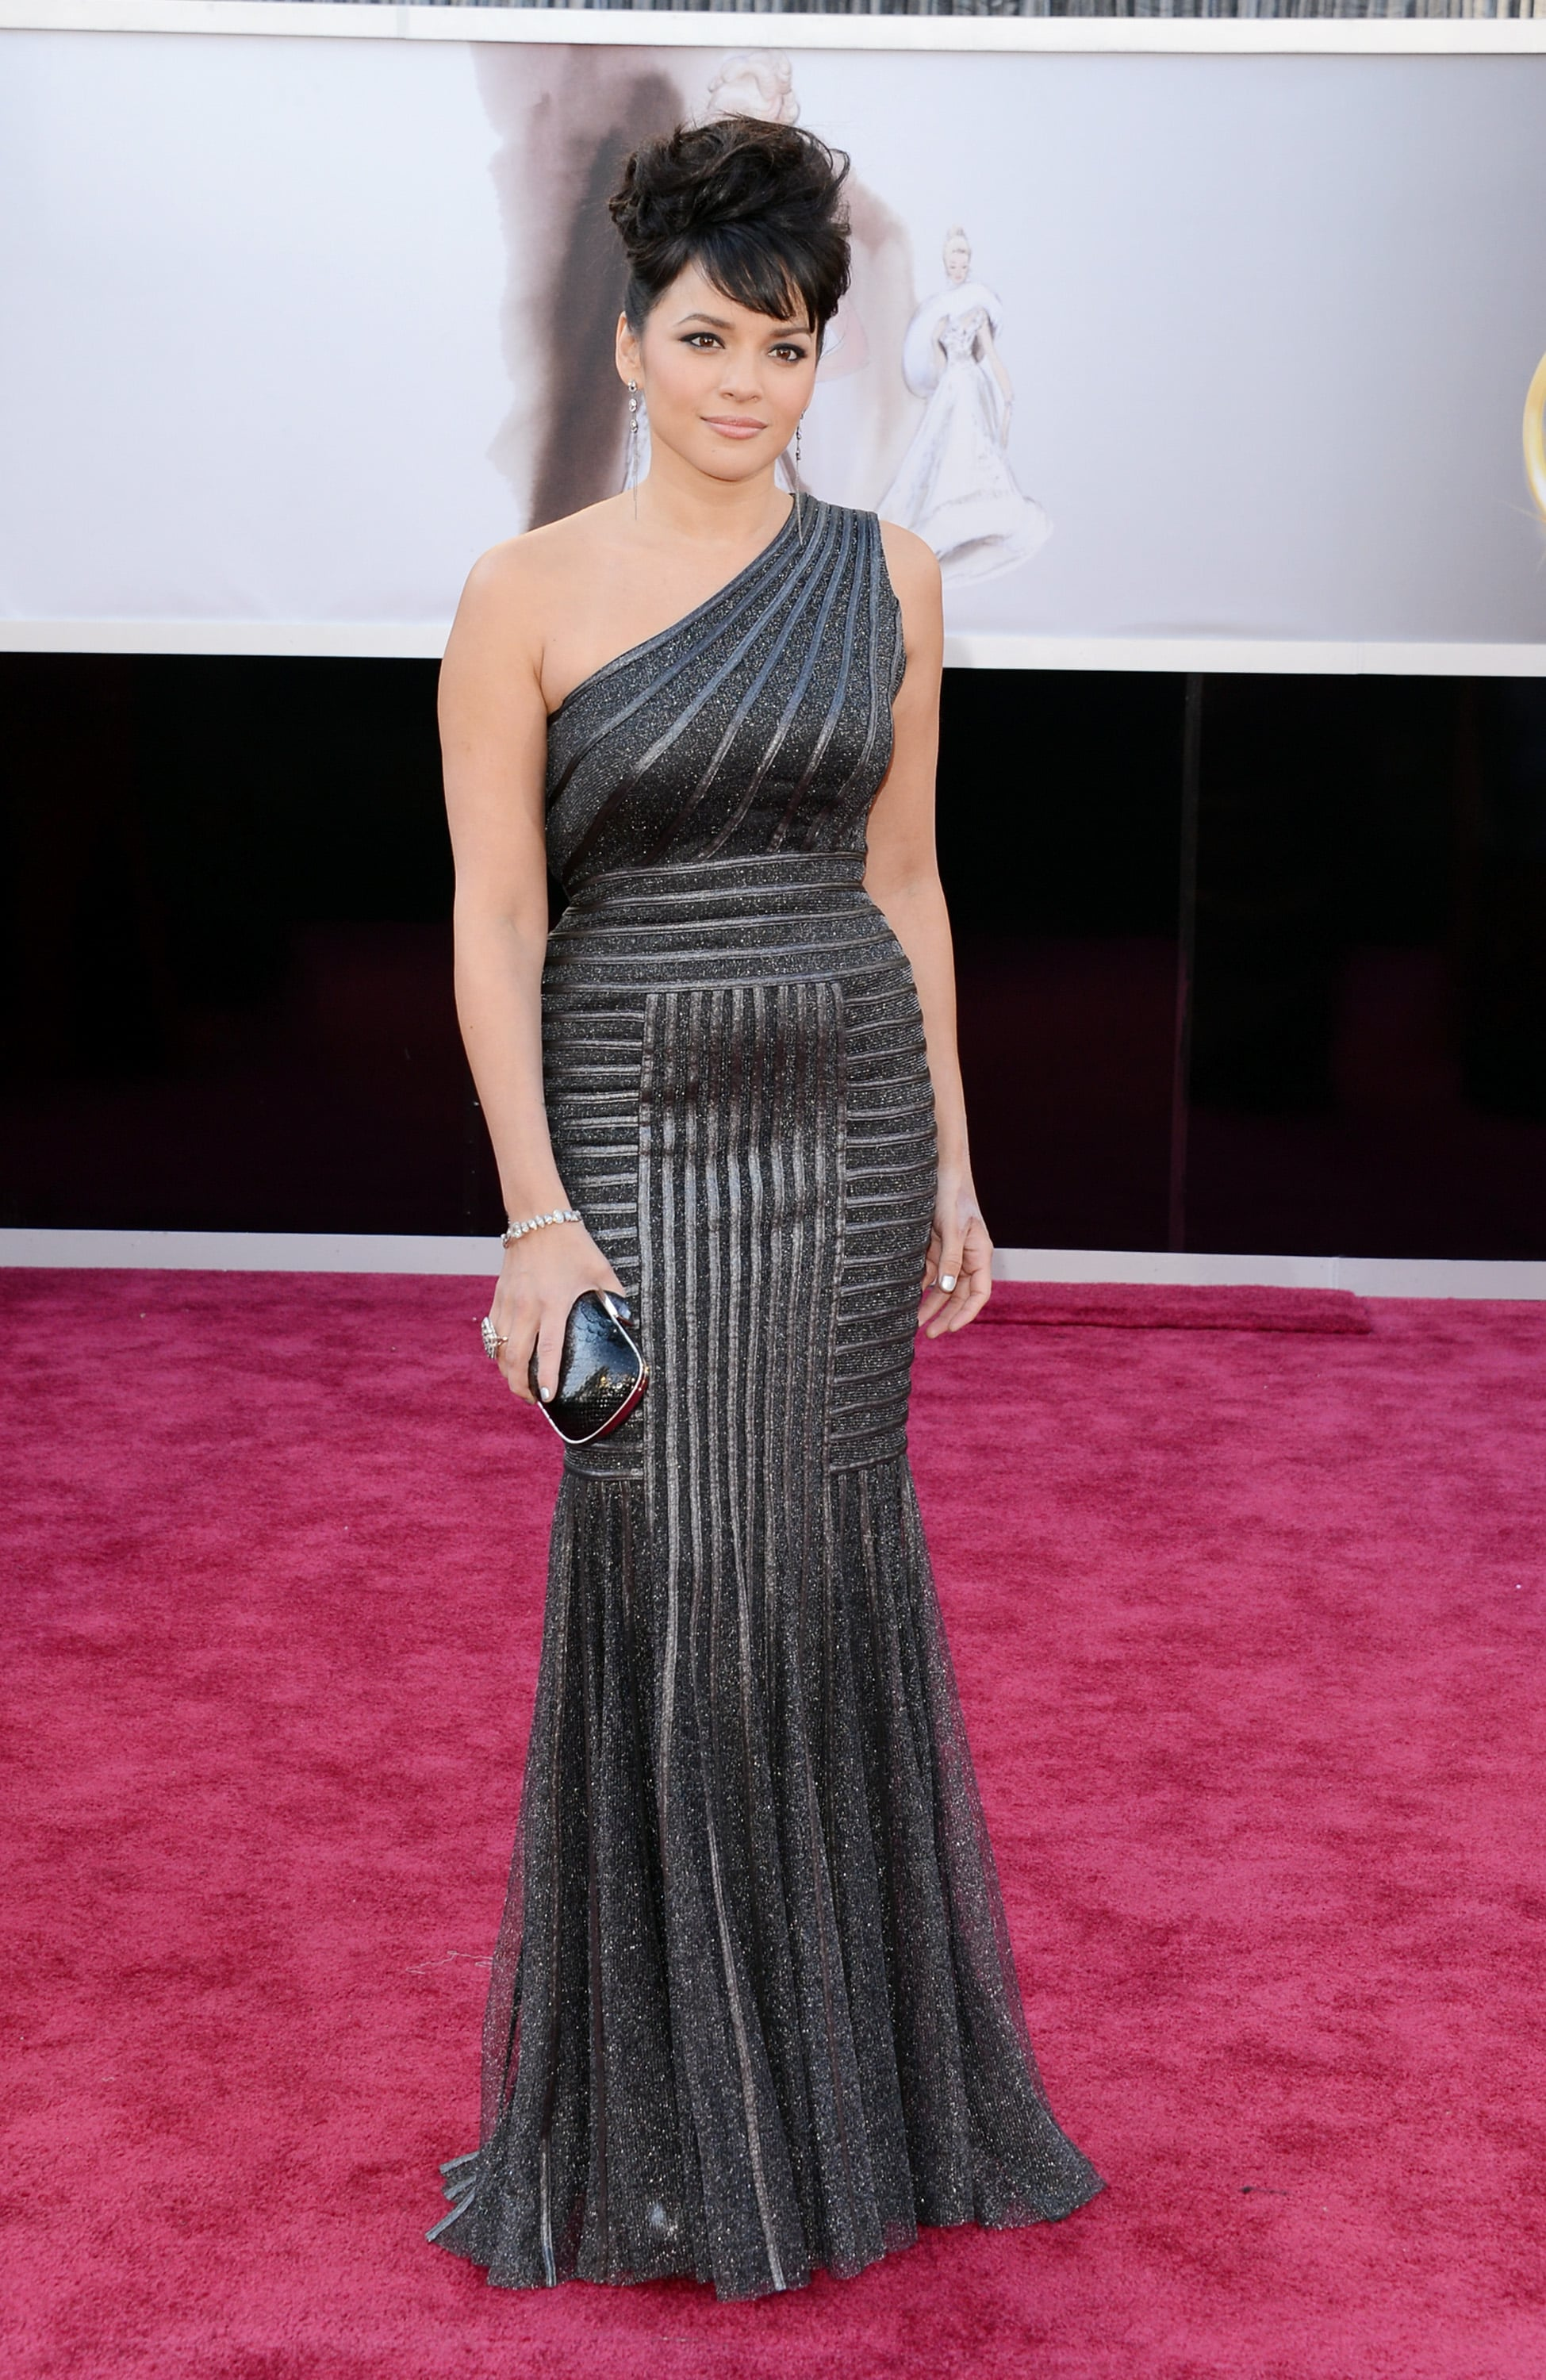 Norah Jones on the red carpet at the Oscars 2013.